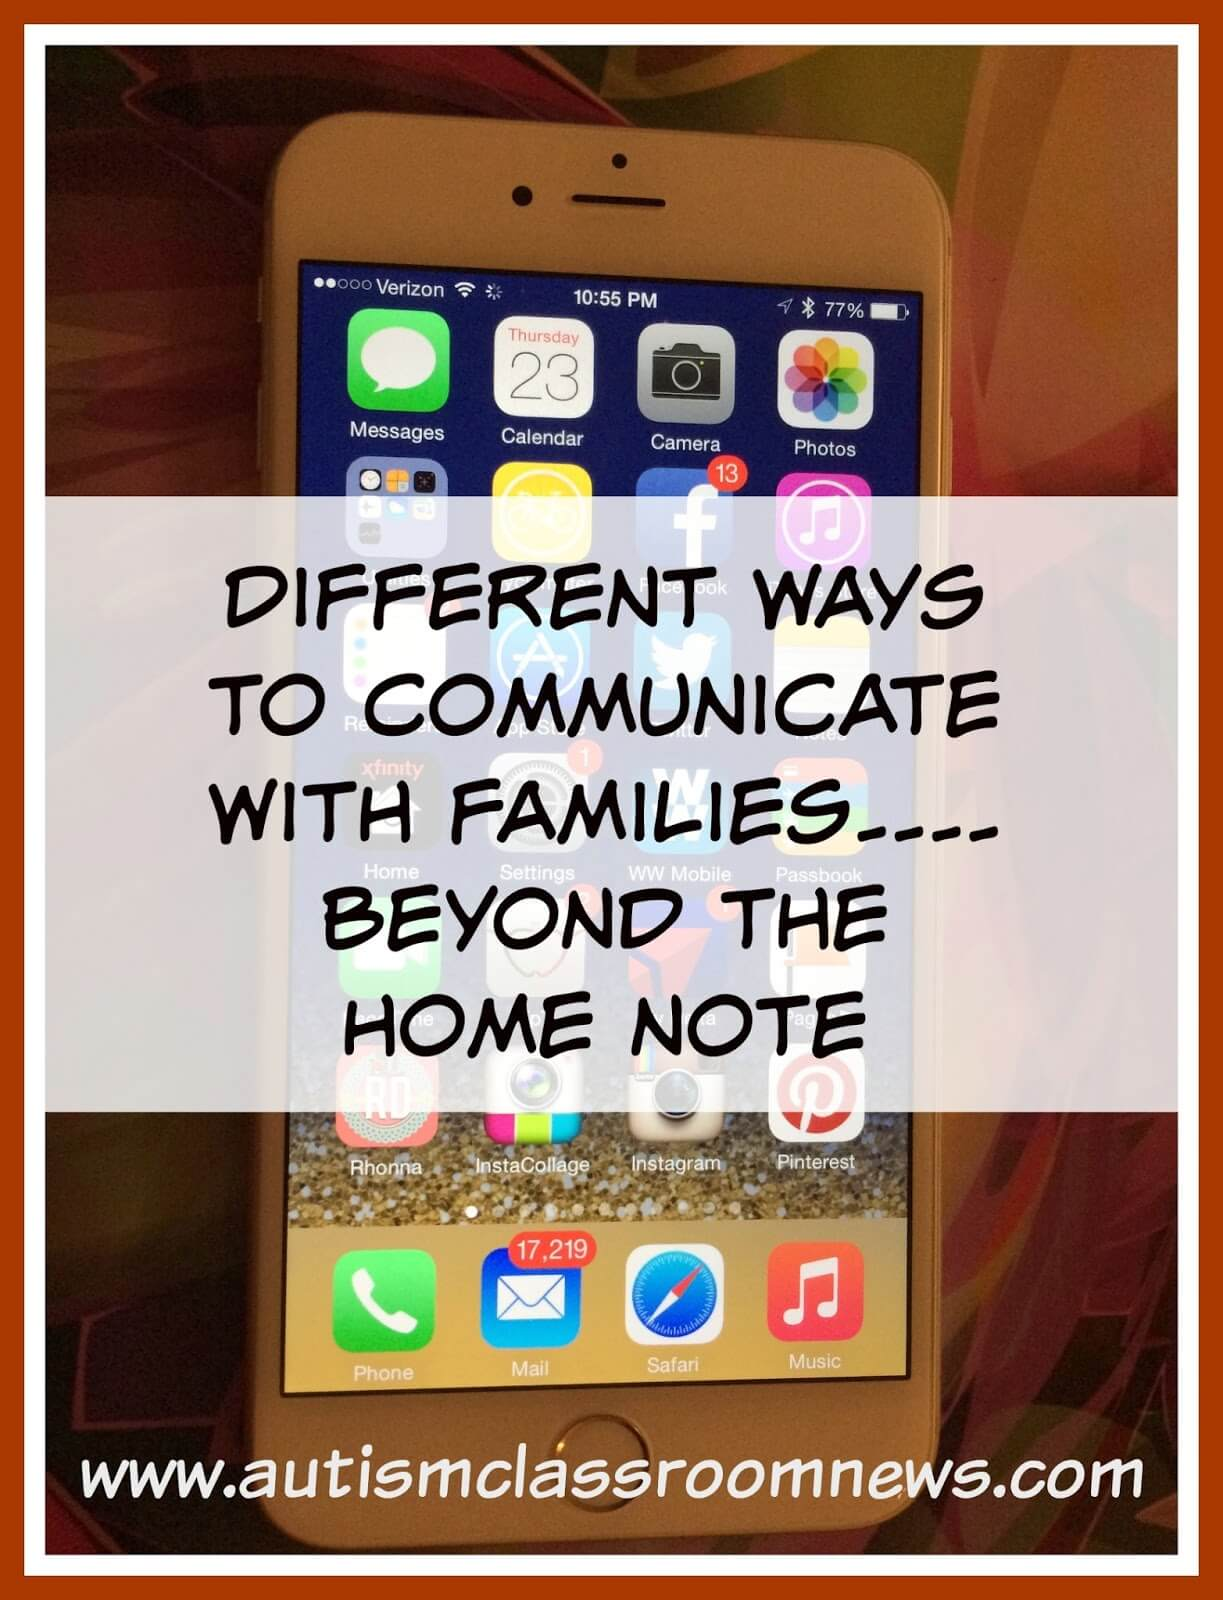 Home communications communications communication by telephone - 8 Ways To Communicate With Families Beyond The Home Note Autism Classroom Resources